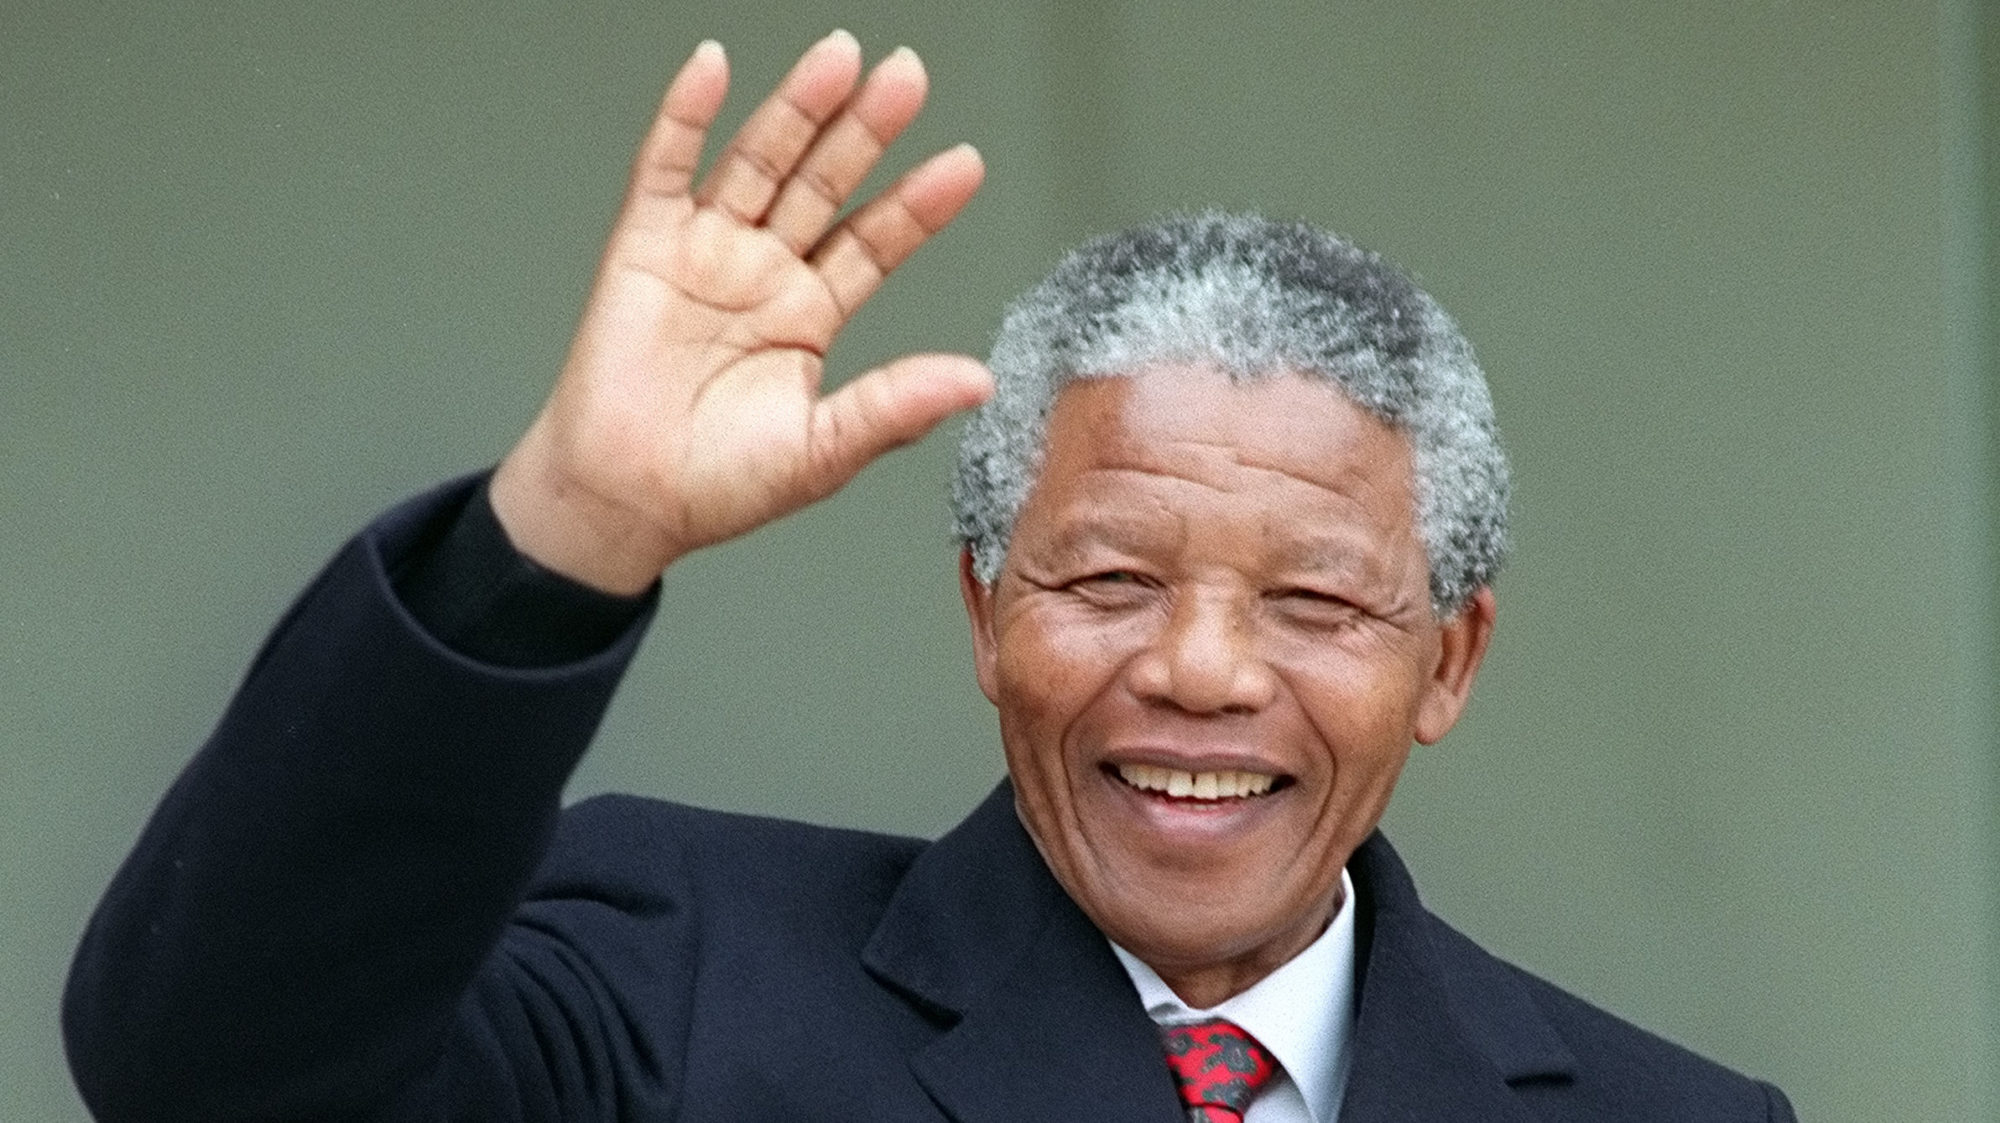 Mandela was the world's most admired and most revered public figure